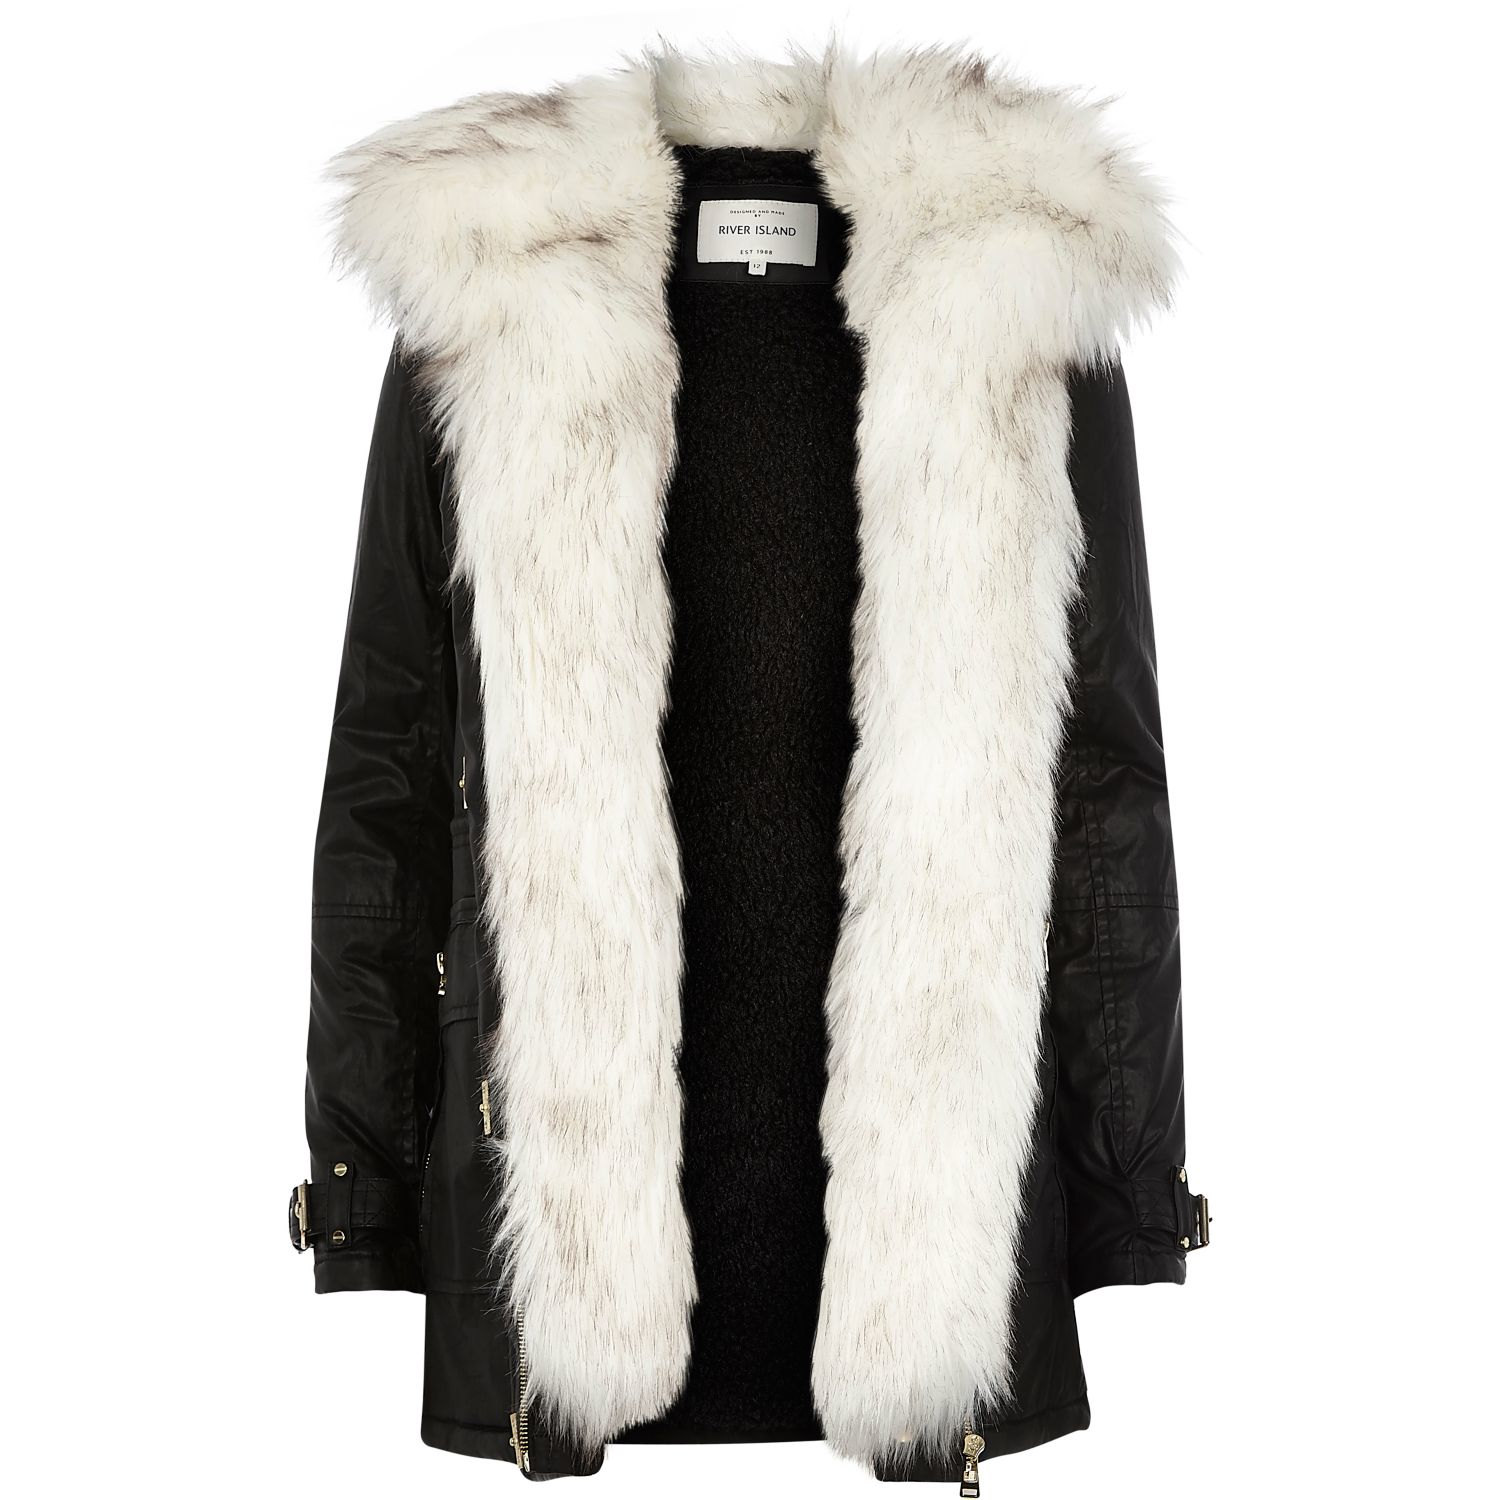 River Island Parka Jacket With Faux Fur